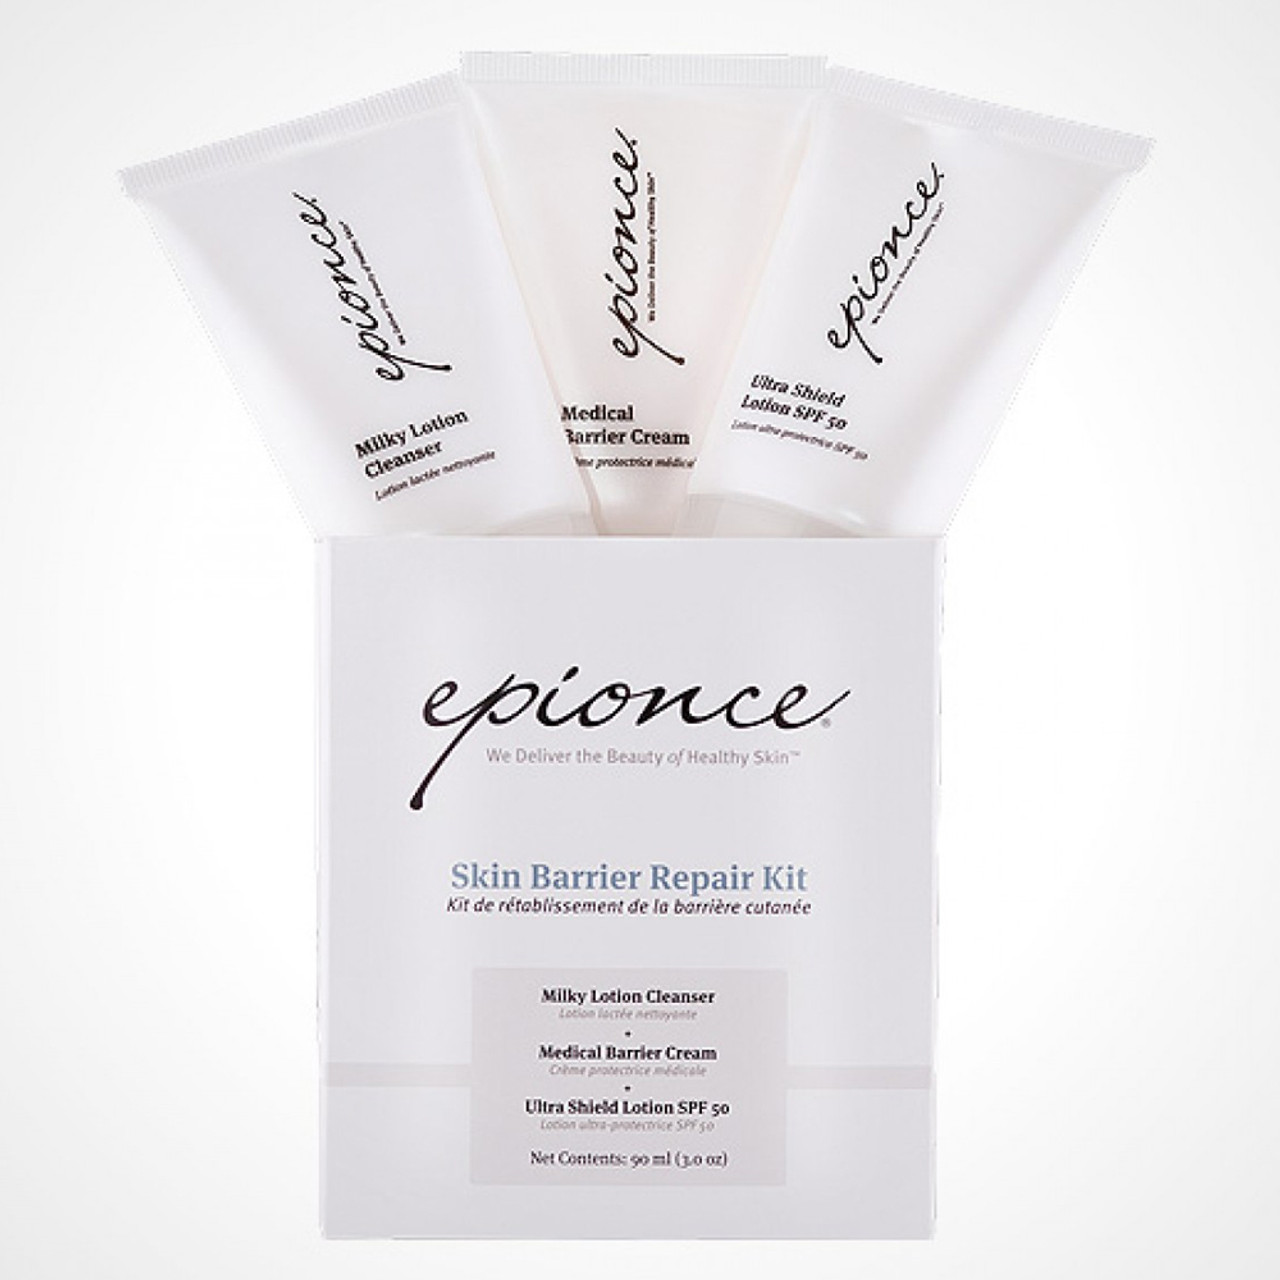 Epionce Skin Barrier Repair Kit Reviews Big Savings And Free